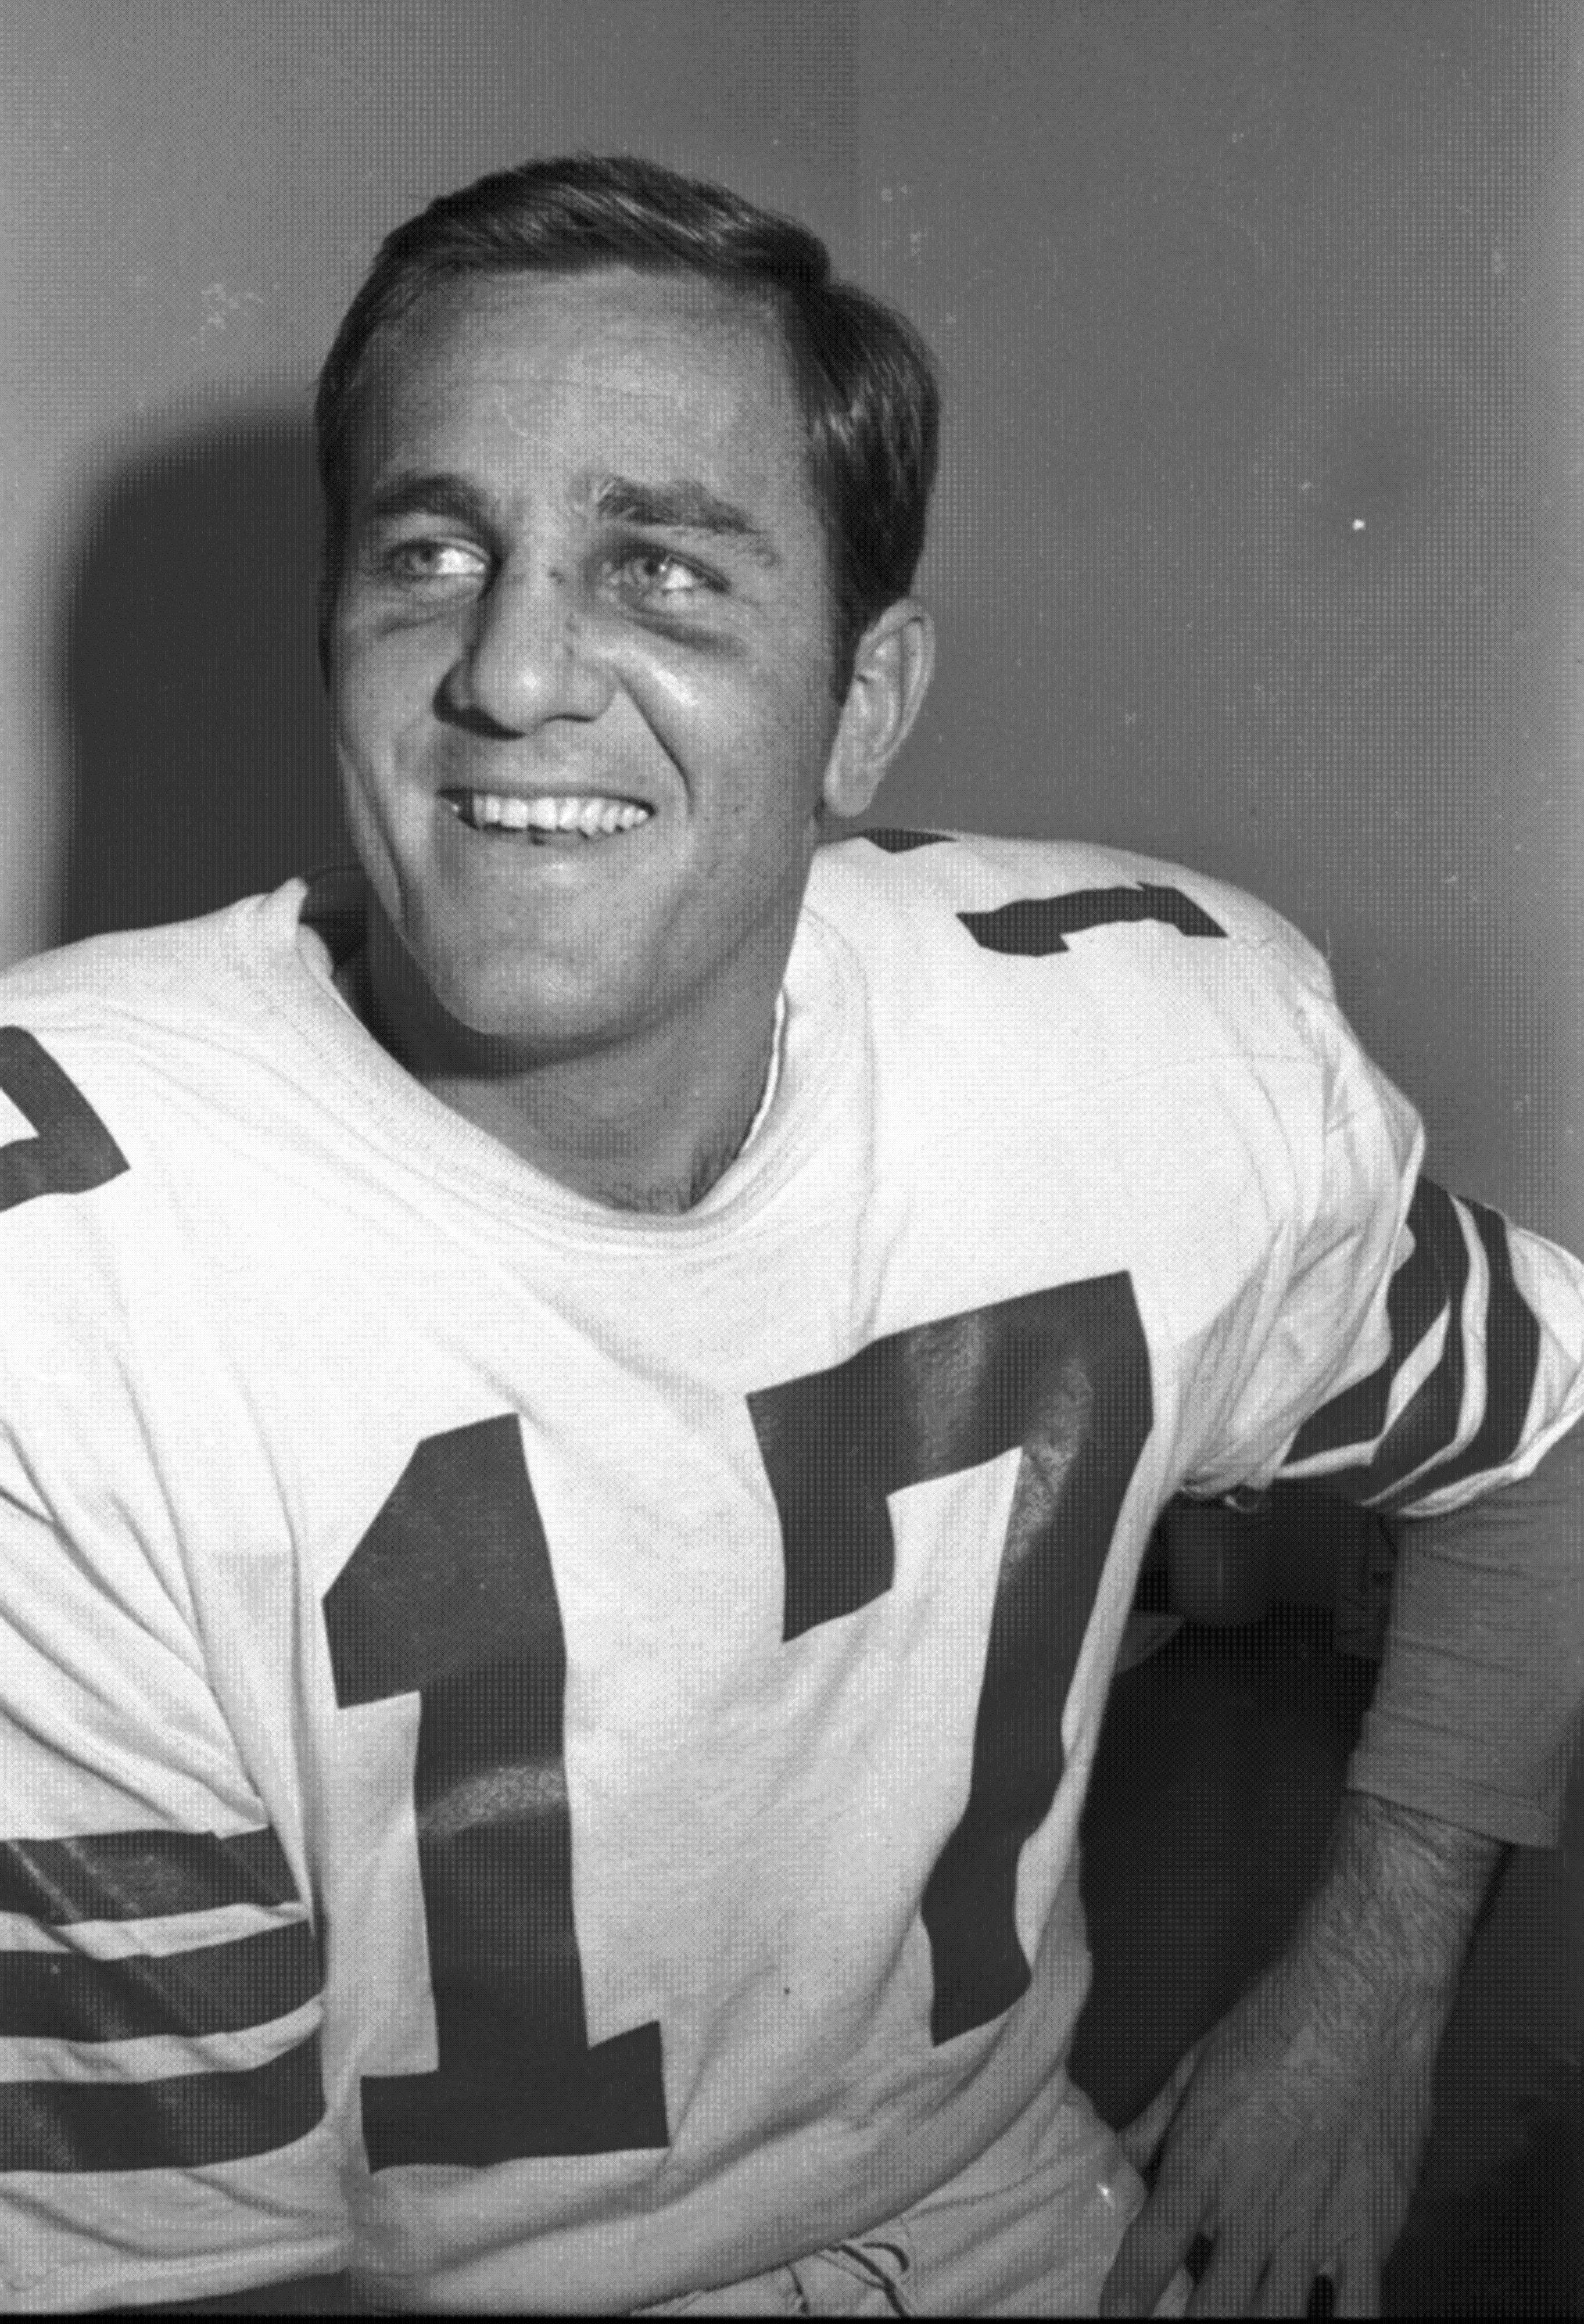 This Dec. 14, 1967, file photo shows Dallas Cowboys quarterback Don Meredith, in Dallas.